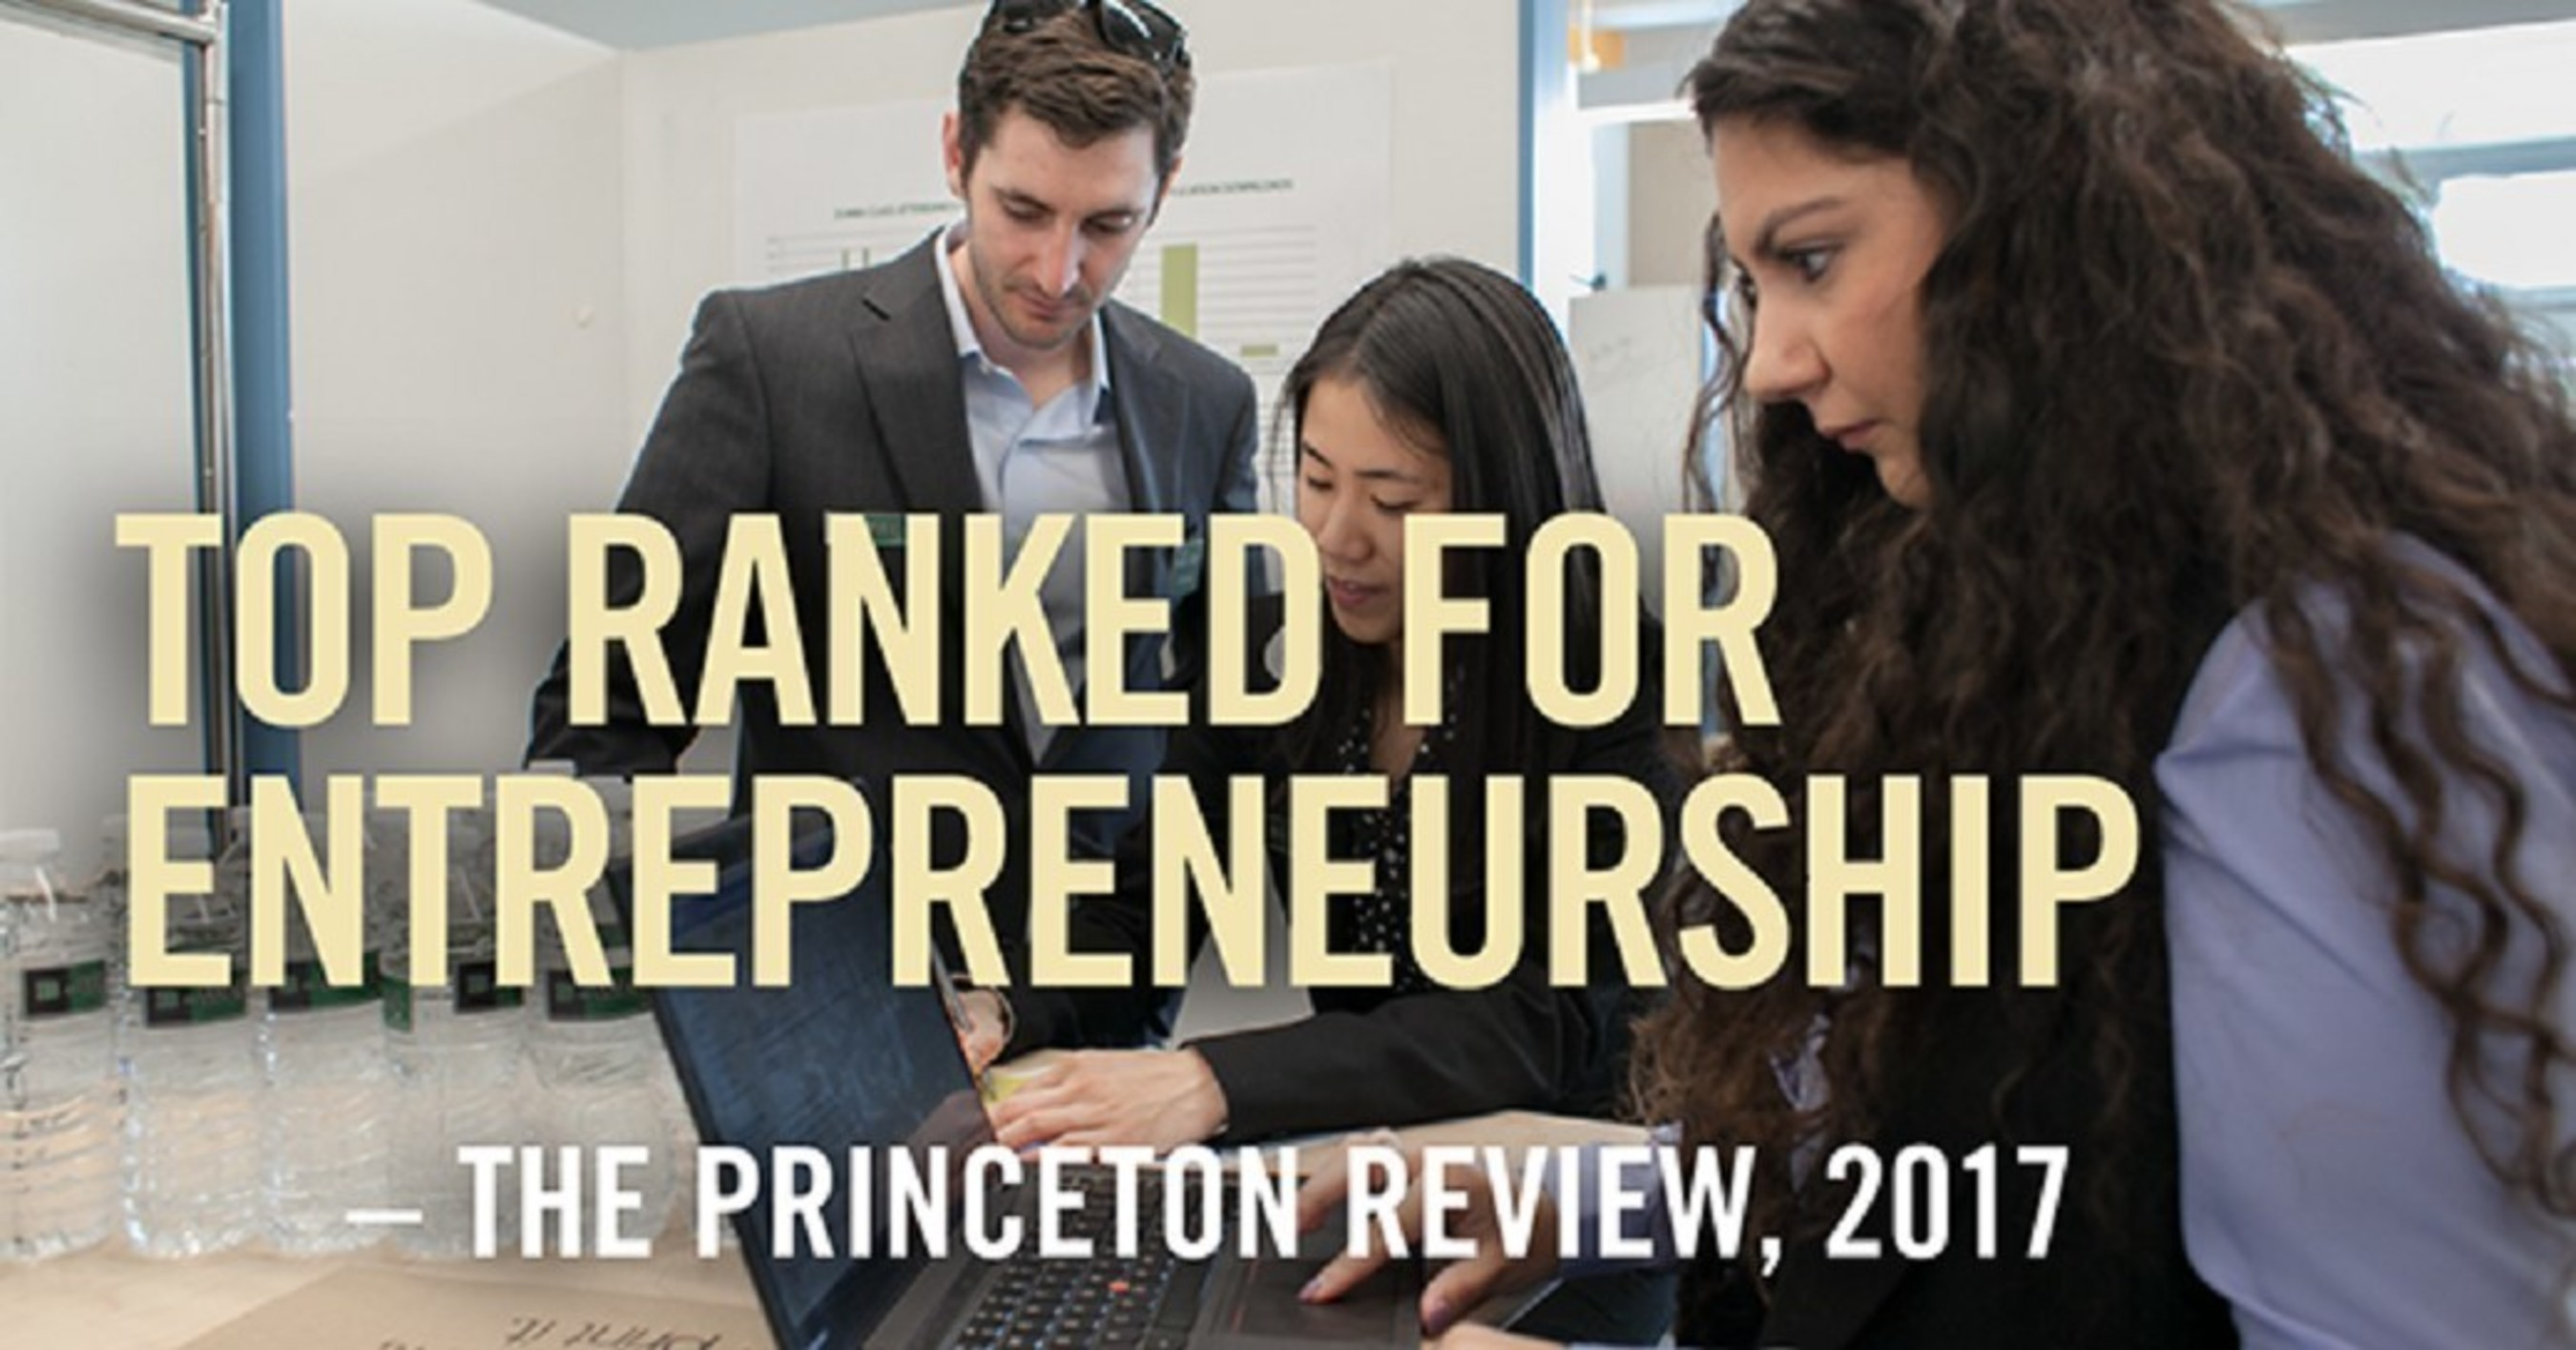 The Princeton Review and Entre¬preneur magazine have again named Babson College the No. 1 undergraduate school and the No. 2 graduate school for entrepreneurship education nationwide.